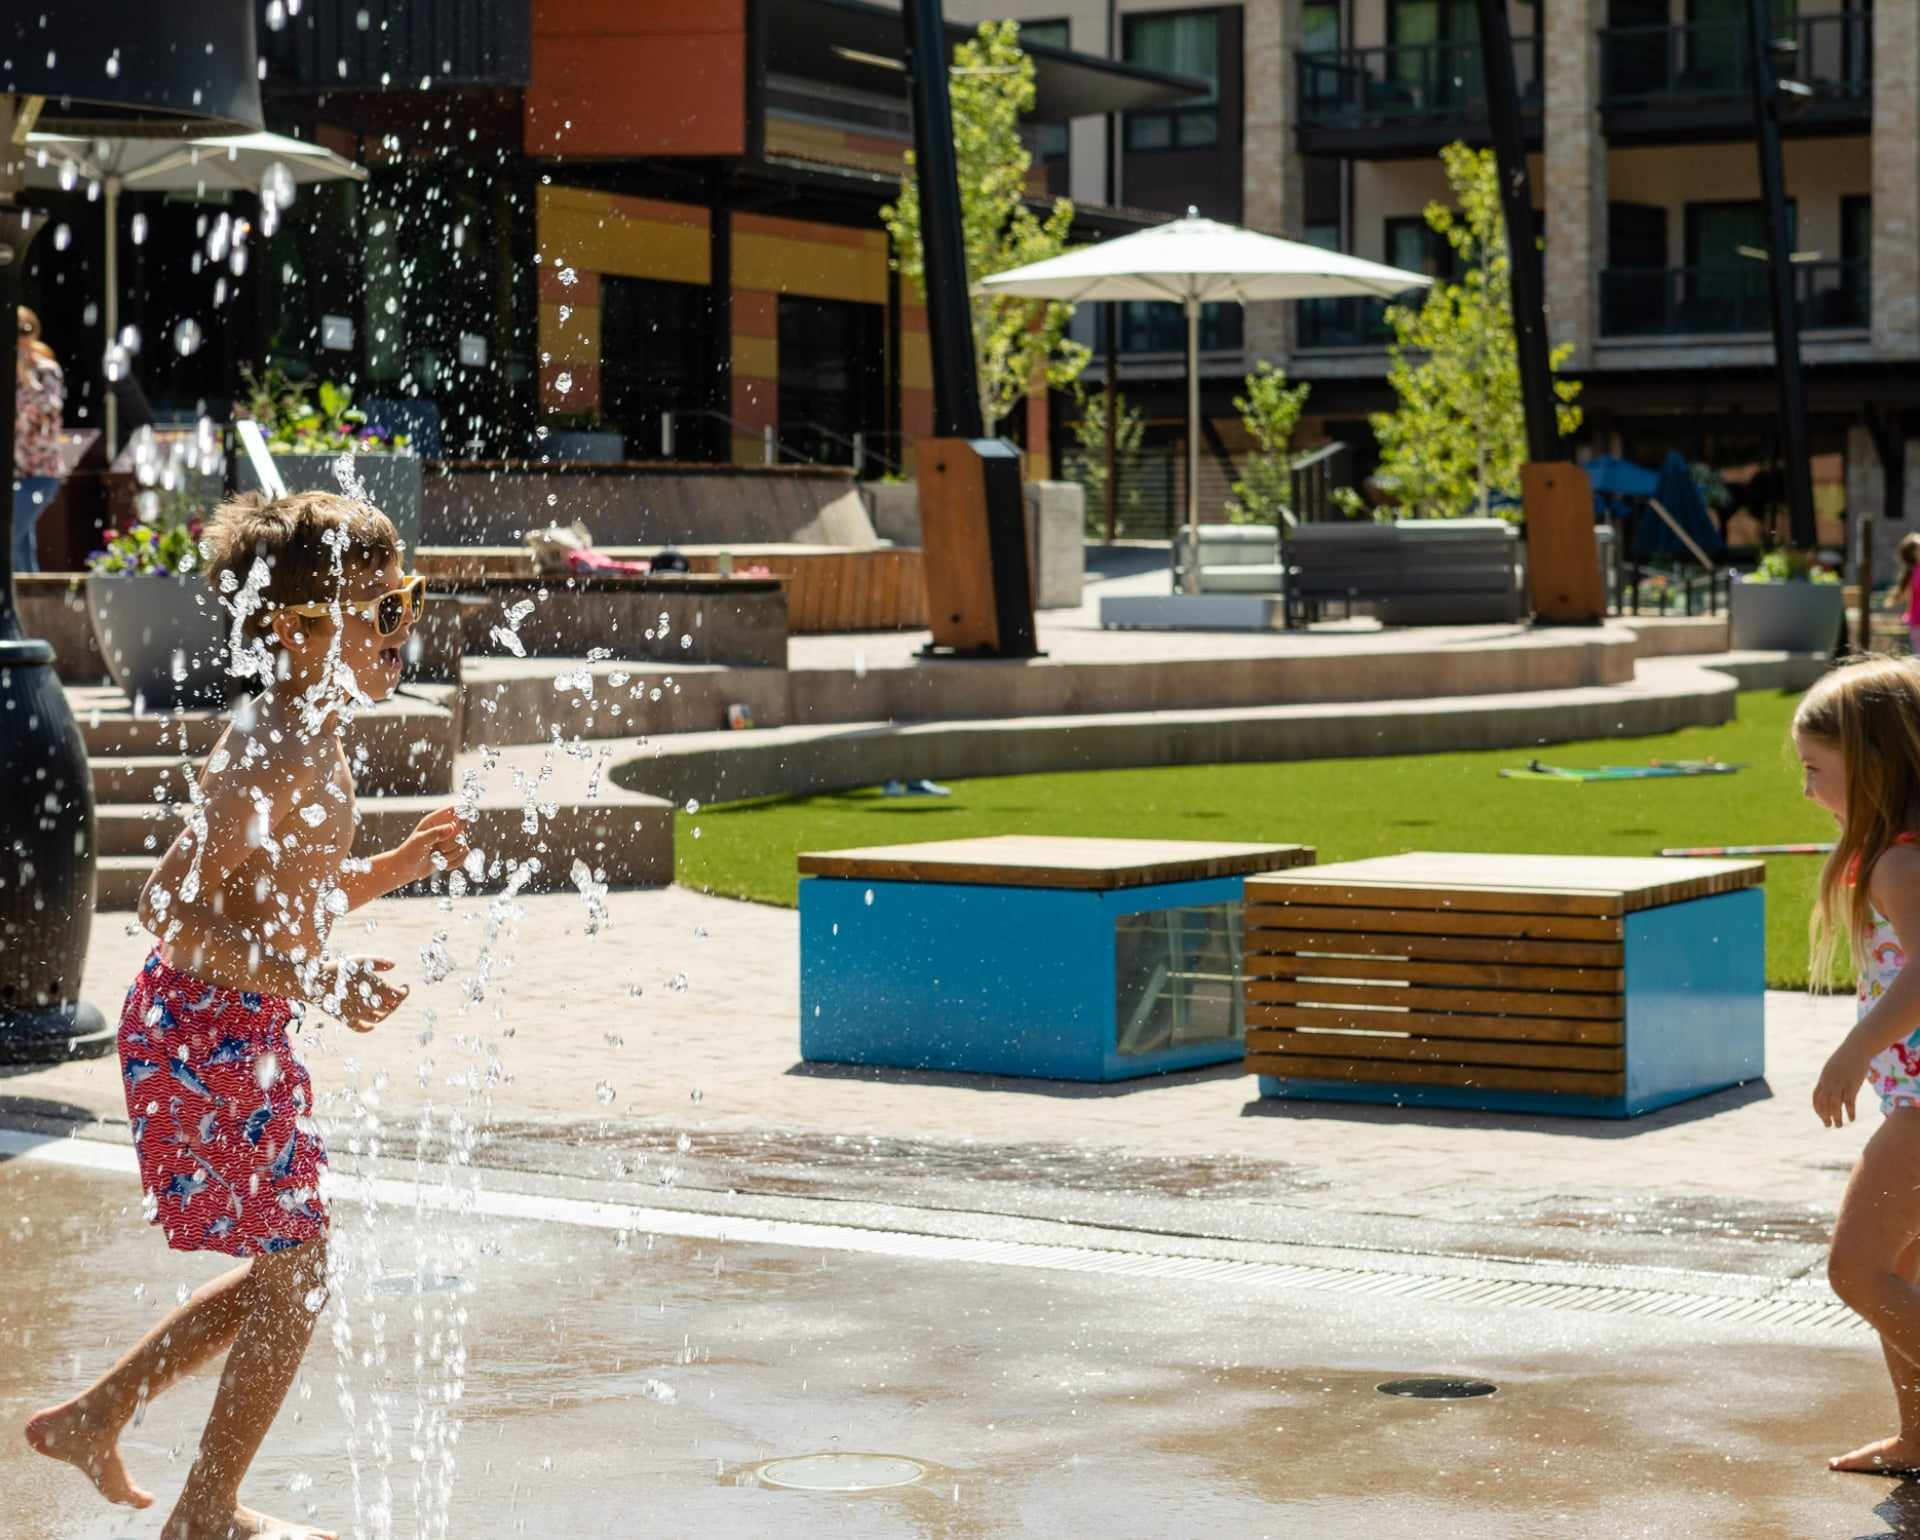 Splash Fountain - Bring the kids to play around in the splash fountains, a refreshing way to cool off all summer long.